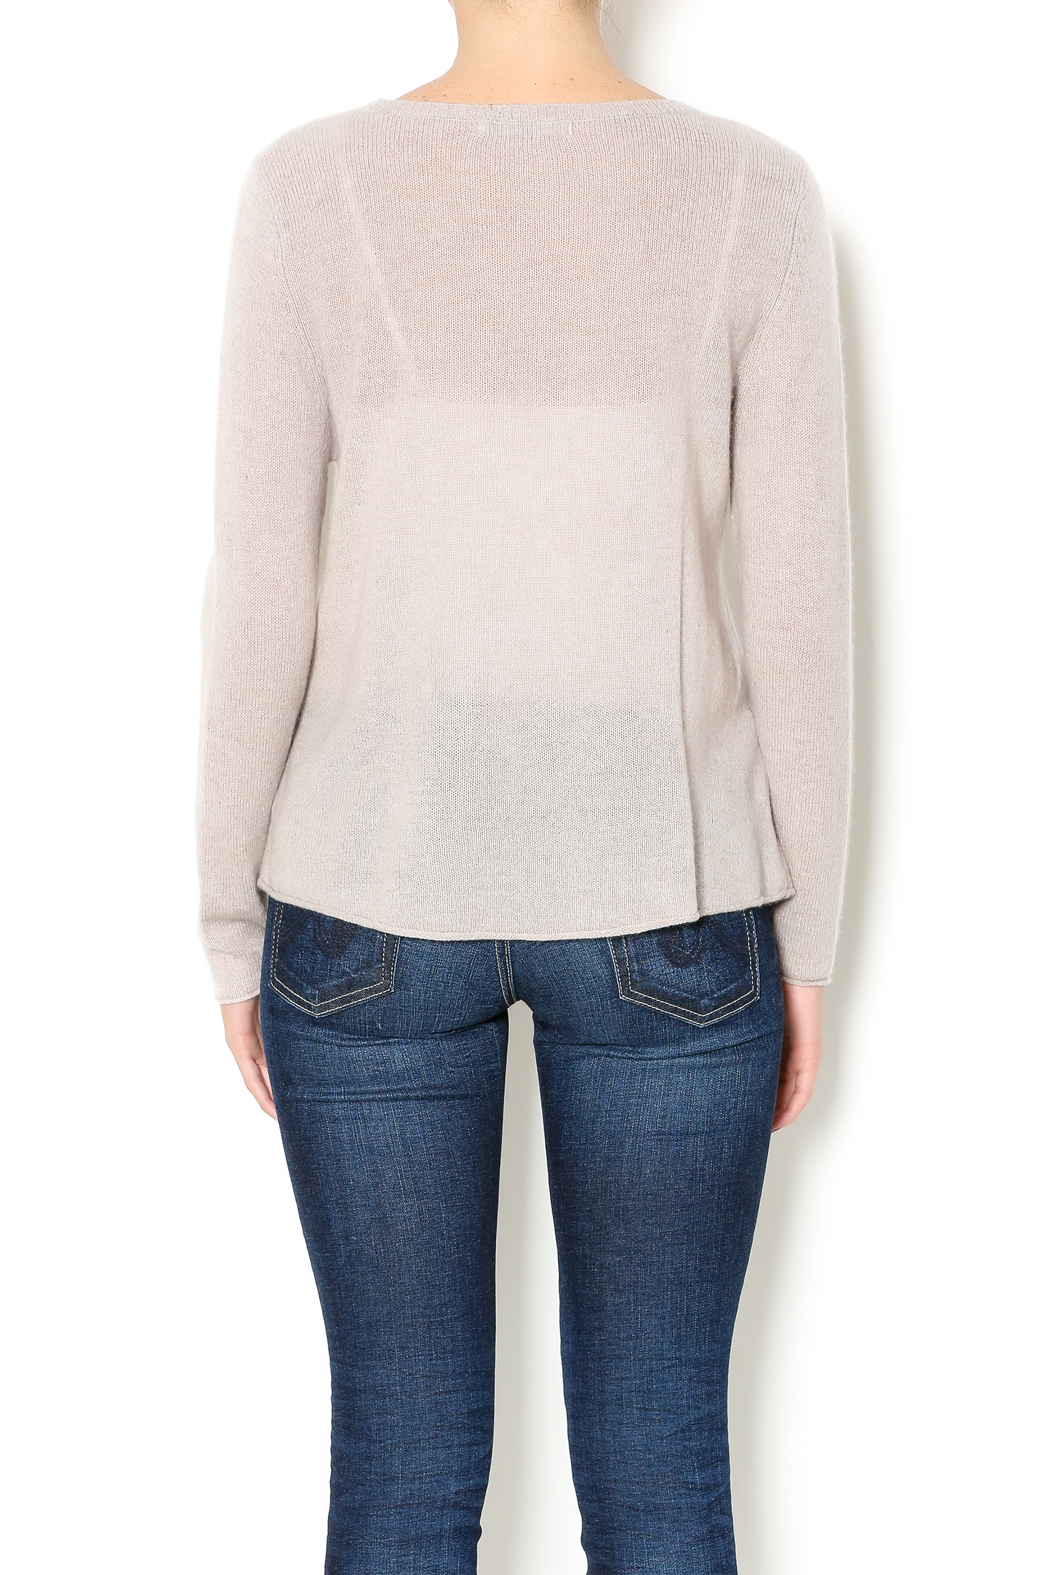 Lightweight Cashmere Sweater — Shoptiques